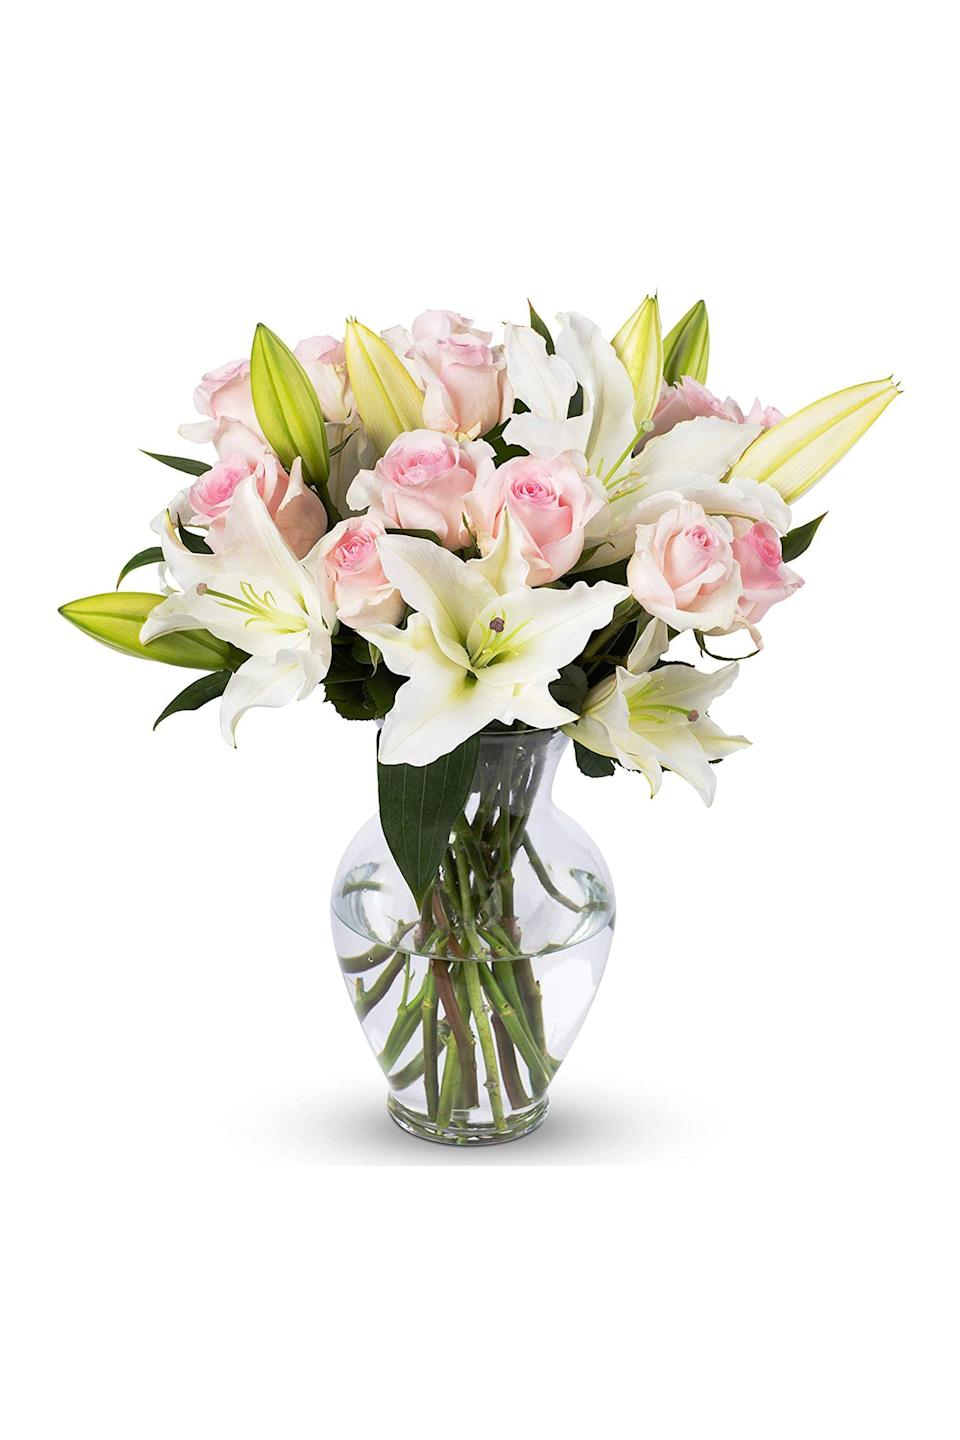 """<p><strong>Benchmark Bouquets</strong></p><p>amazon.com</p><p><a href=""""https://www.amazon.com/dp/B075V9B8SW?tag=syn-yahoo-20&ascsubtag=%5Bartid%7C10063.g.35152525%5Bsrc%7Cyahoo-us"""" rel=""""nofollow noopener"""" target=""""_blank"""" data-ylk=""""slk:Shop Now"""" class=""""link rapid-noclick-resp"""">Shop Now</a></p><p>Do all your shopping on Amazon? Add fresh flowers to your Prime cart, because the retailer's botanical selections just might surprise you. With raving reviews coupled with premium convenience, this is a no-brainer choice. </p>"""